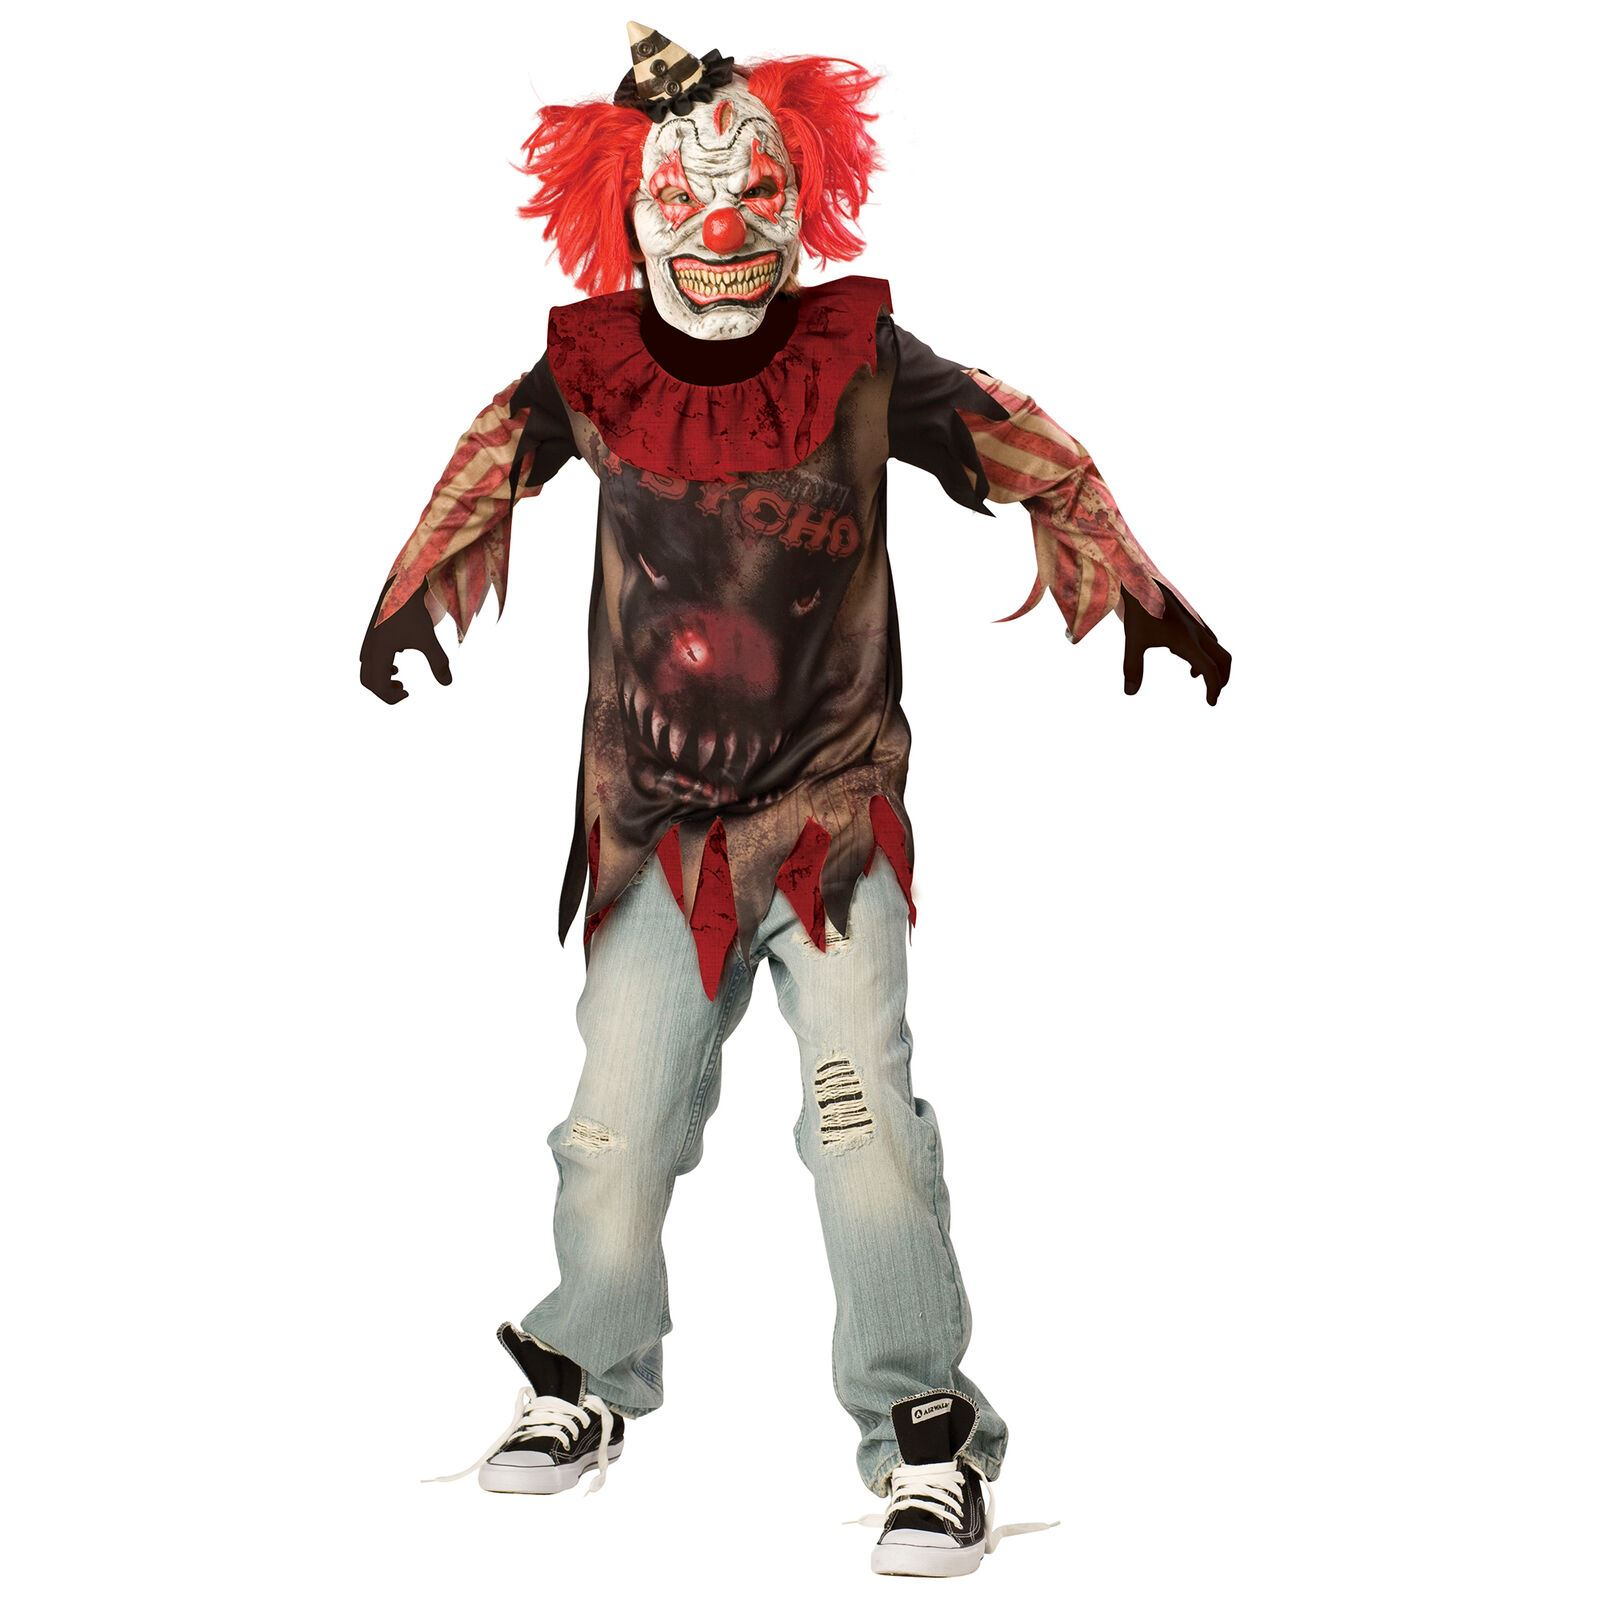 Scary Clown Halloween Costume.Details About Sideshow Evil Clown Halloween Costume Boys Horror Scary Fancy Dress 12 14 Years